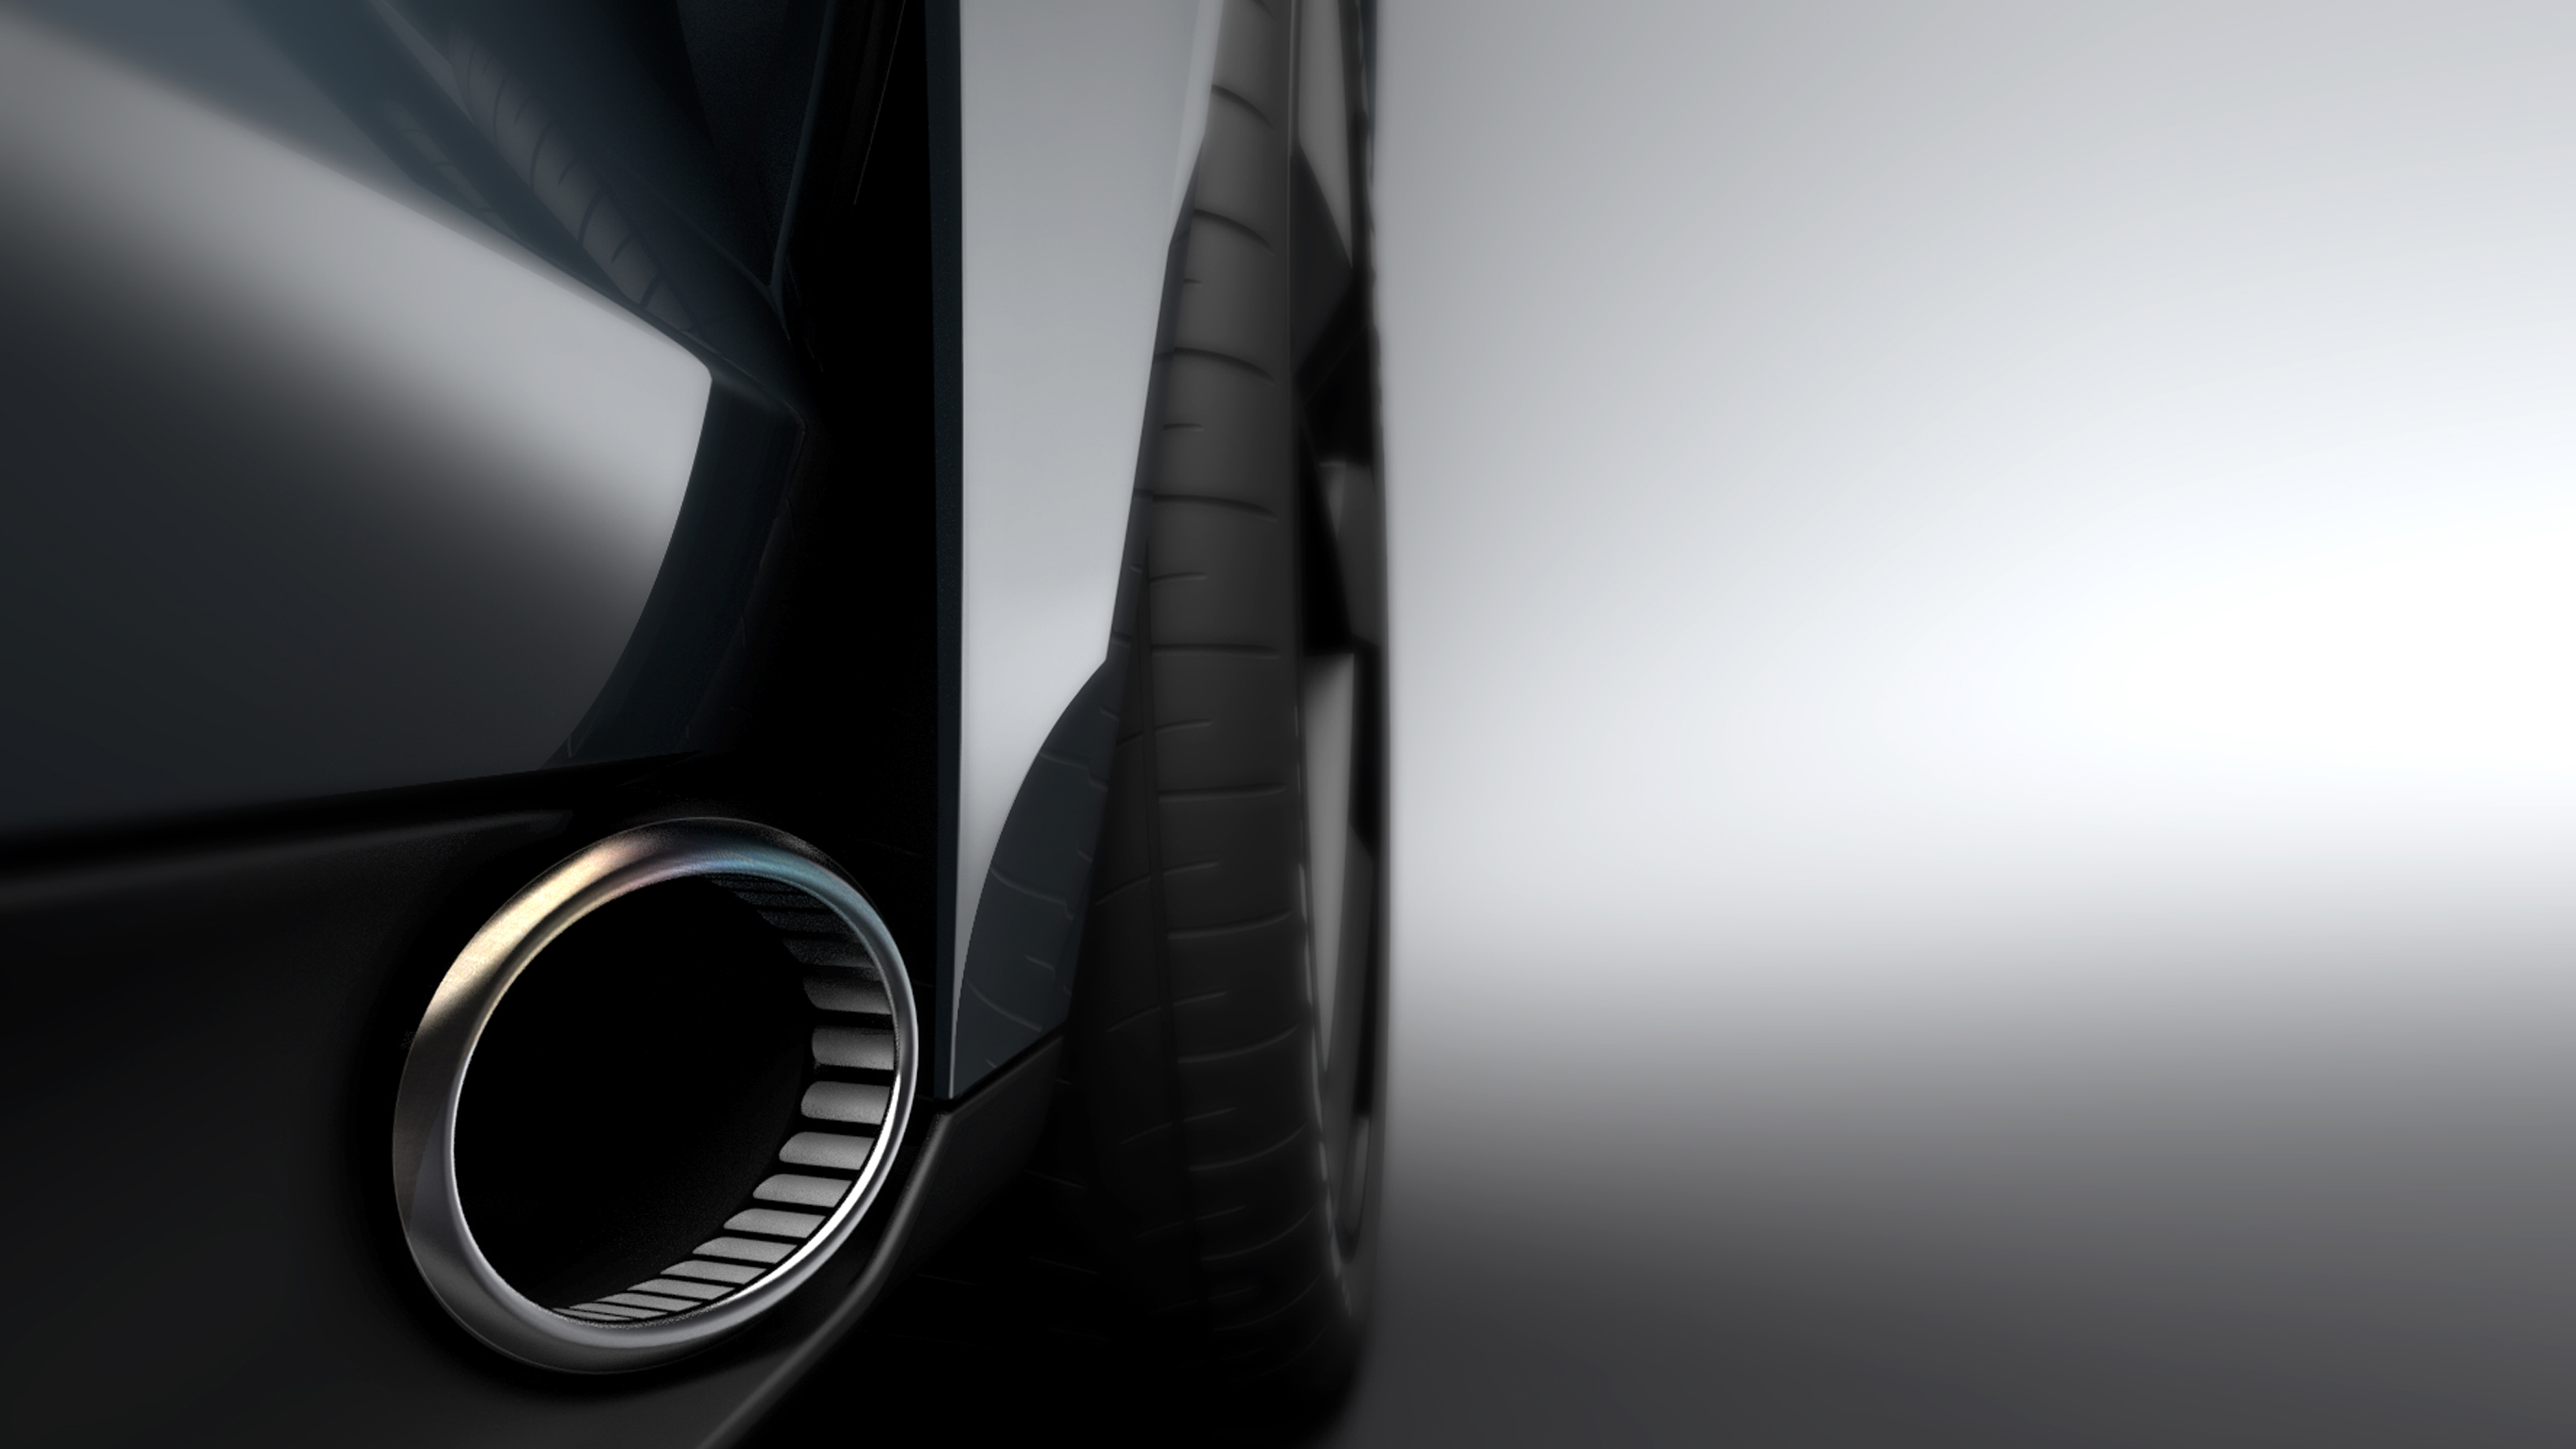 New TVR supercar concept exhausts